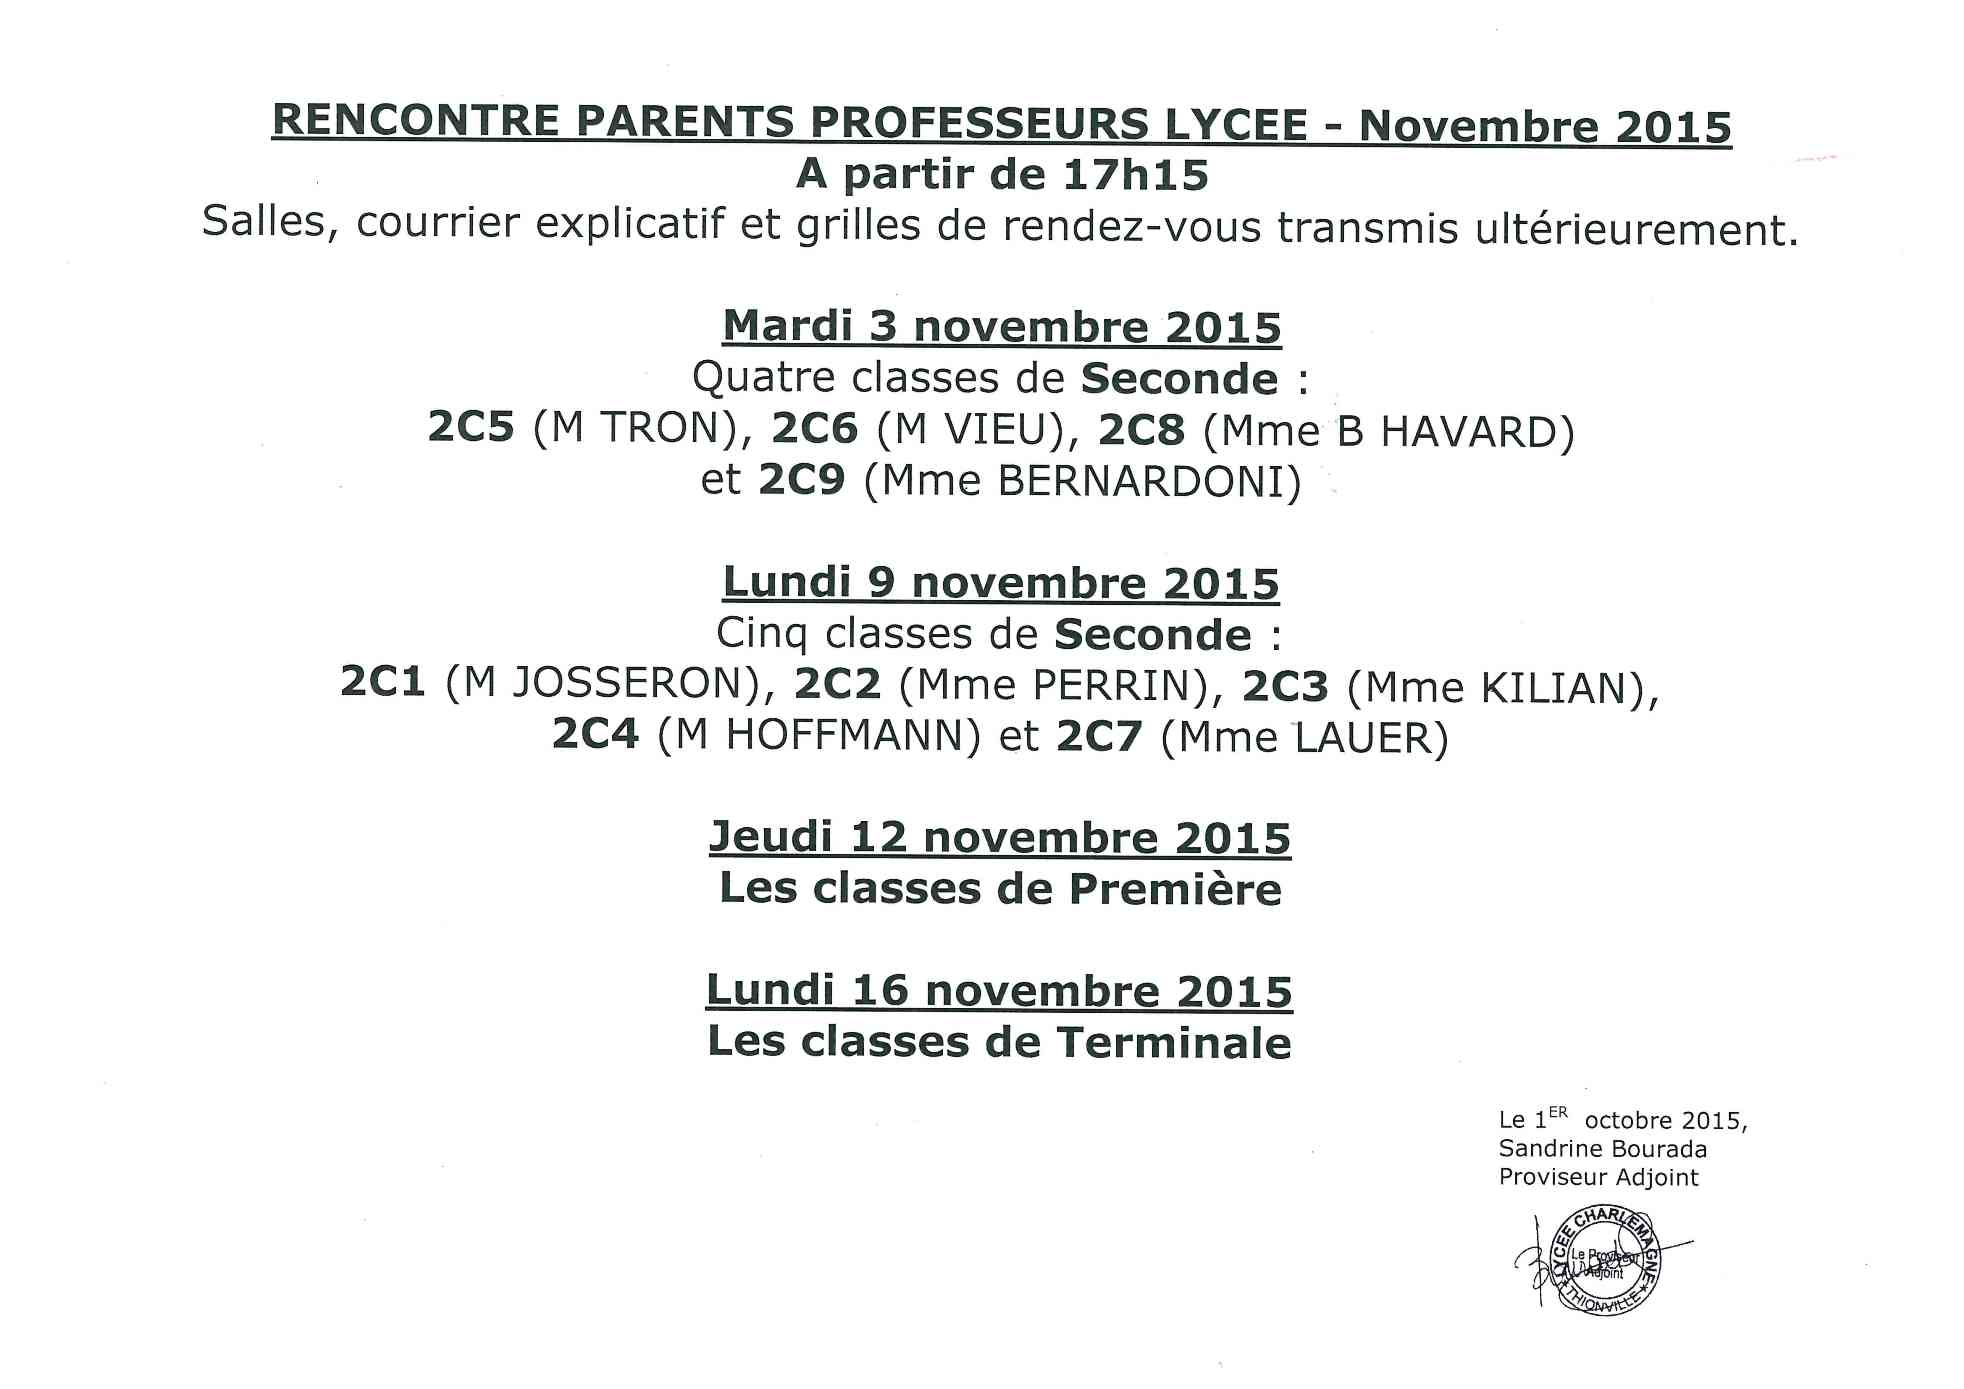 rencontre-parents-professeurs-nov15.jpg